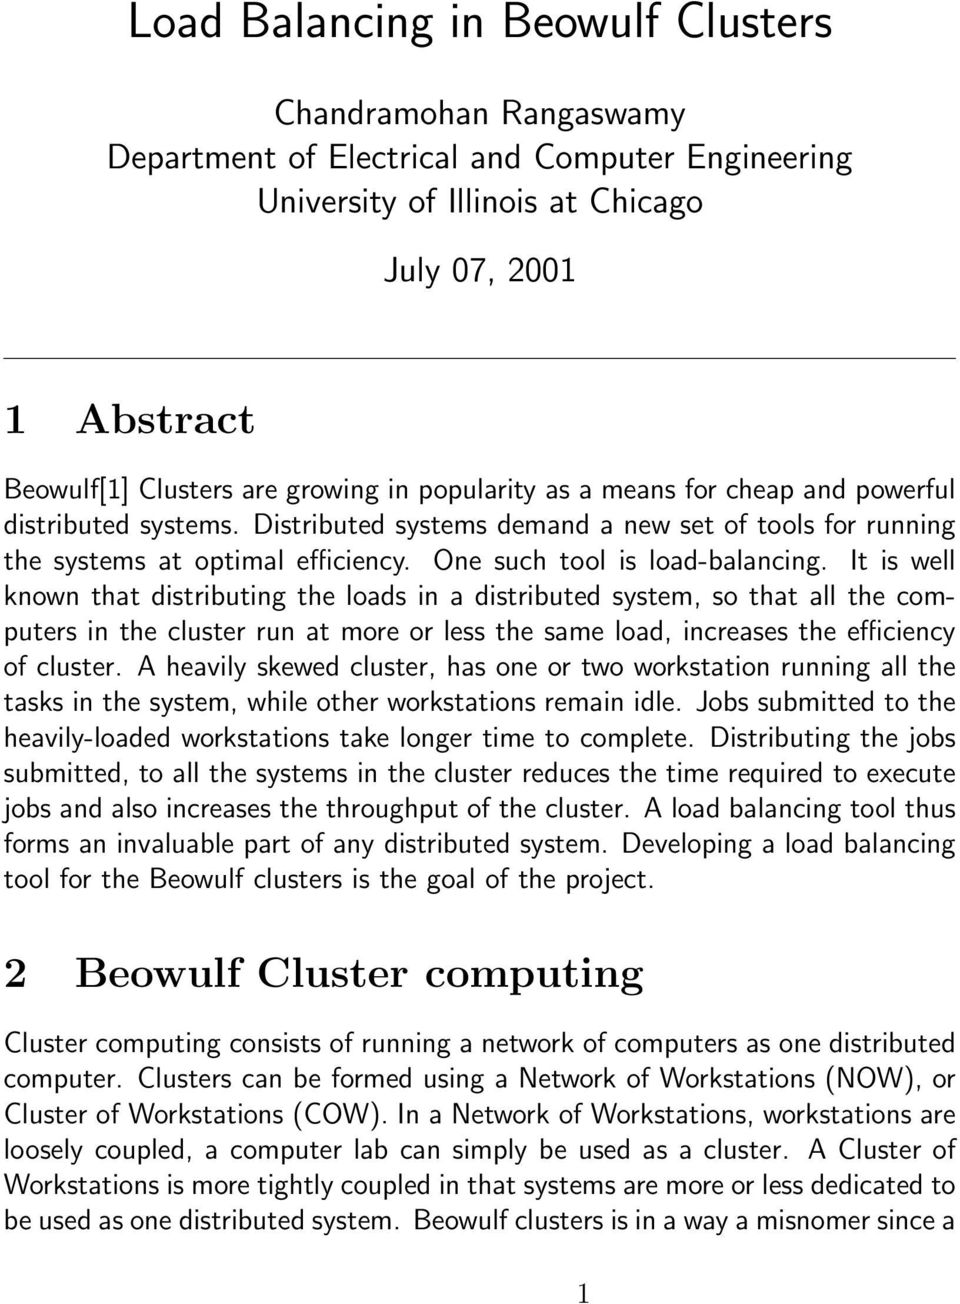 It is well known that distributing the loads in a distributed system, so that all the computers in the cluster run at more or less the same load, increases the efficiency of cluster.